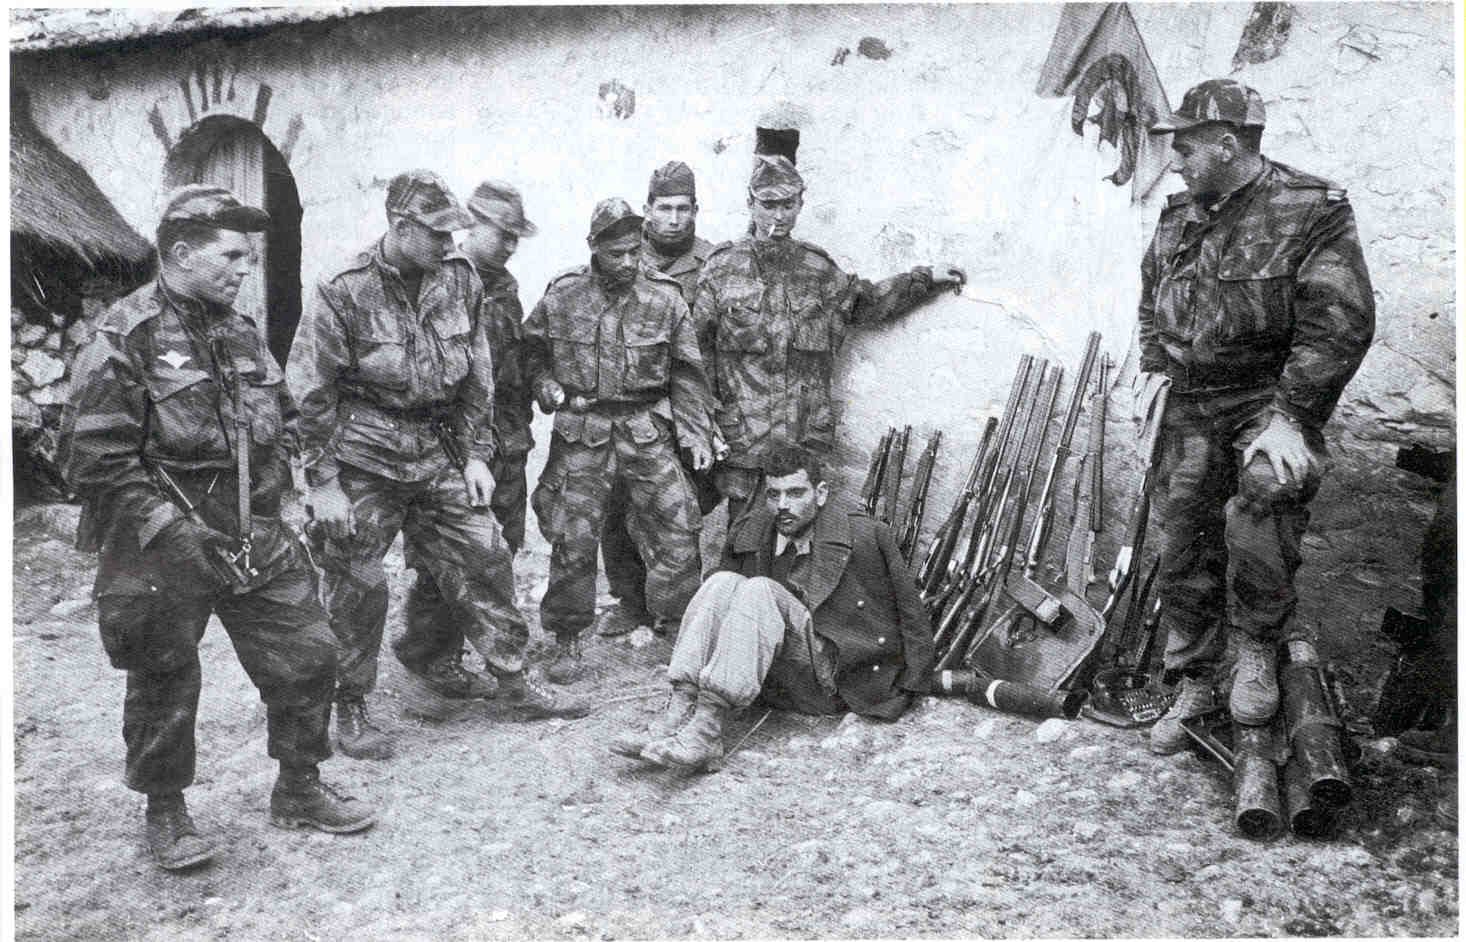 war in algeria On 1 june 1958, general charles de gaulle got the go-ahead to form a new government with the war in algeria threatening to bring civil war to france, de gaulle.